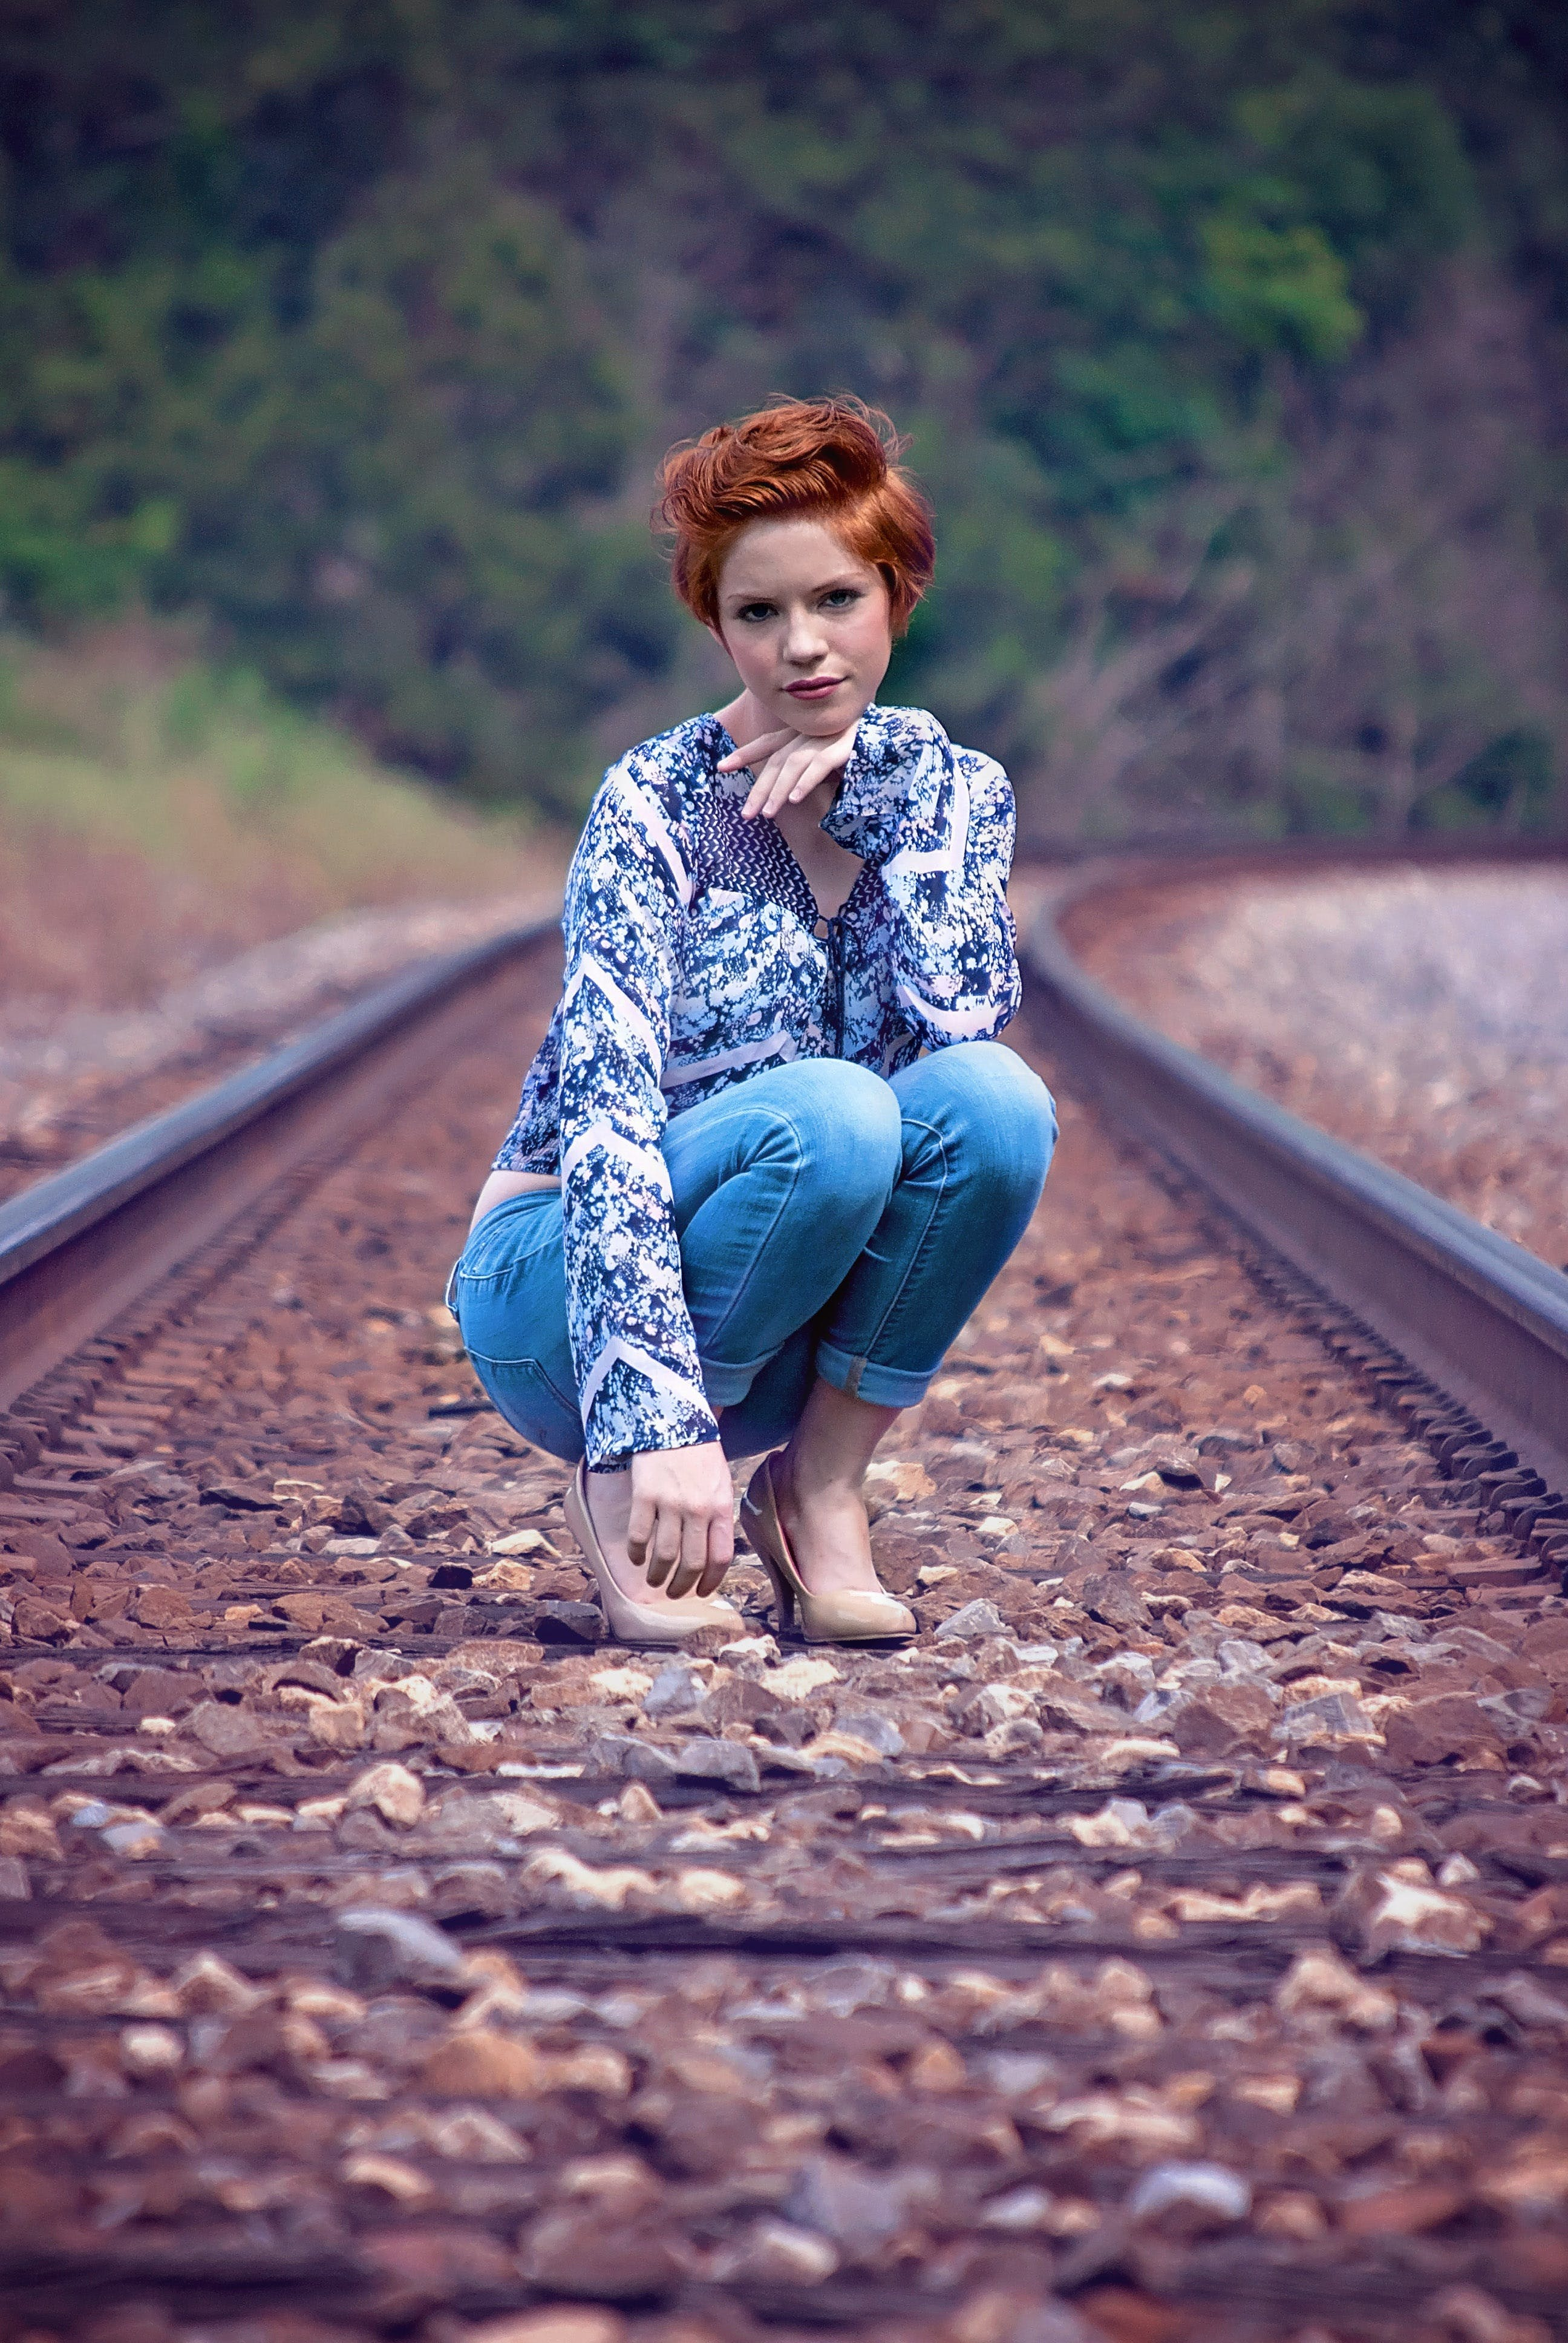 Woman Wearing Blue on Train Track during Daytime